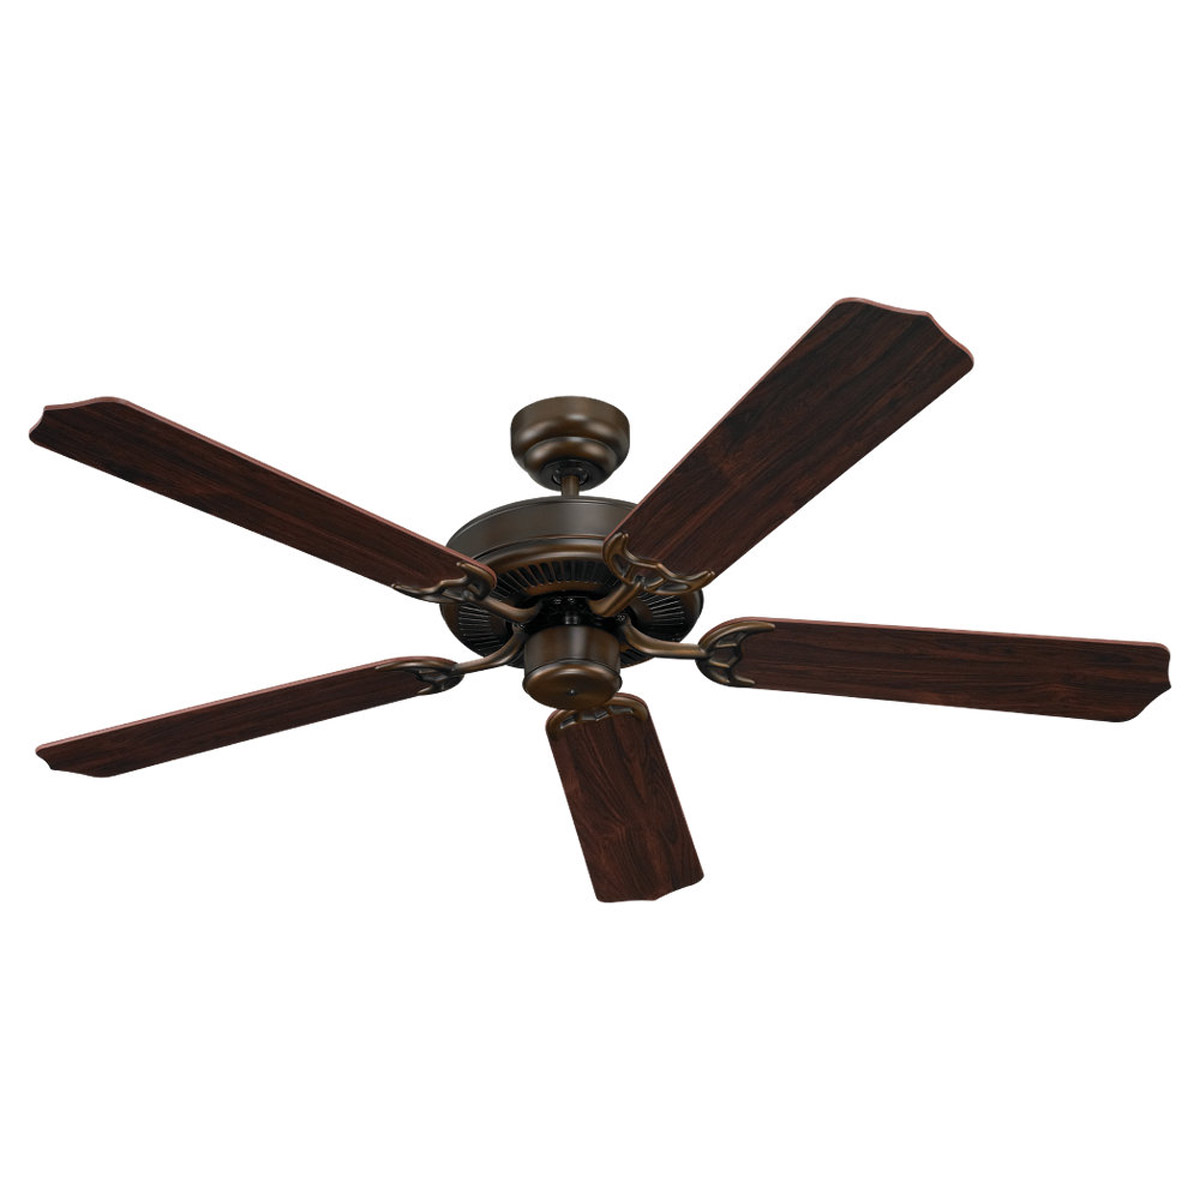 Sea Gull Lighting 52in Quality Max Ceiling Fan in Russet Bronze 15030-829